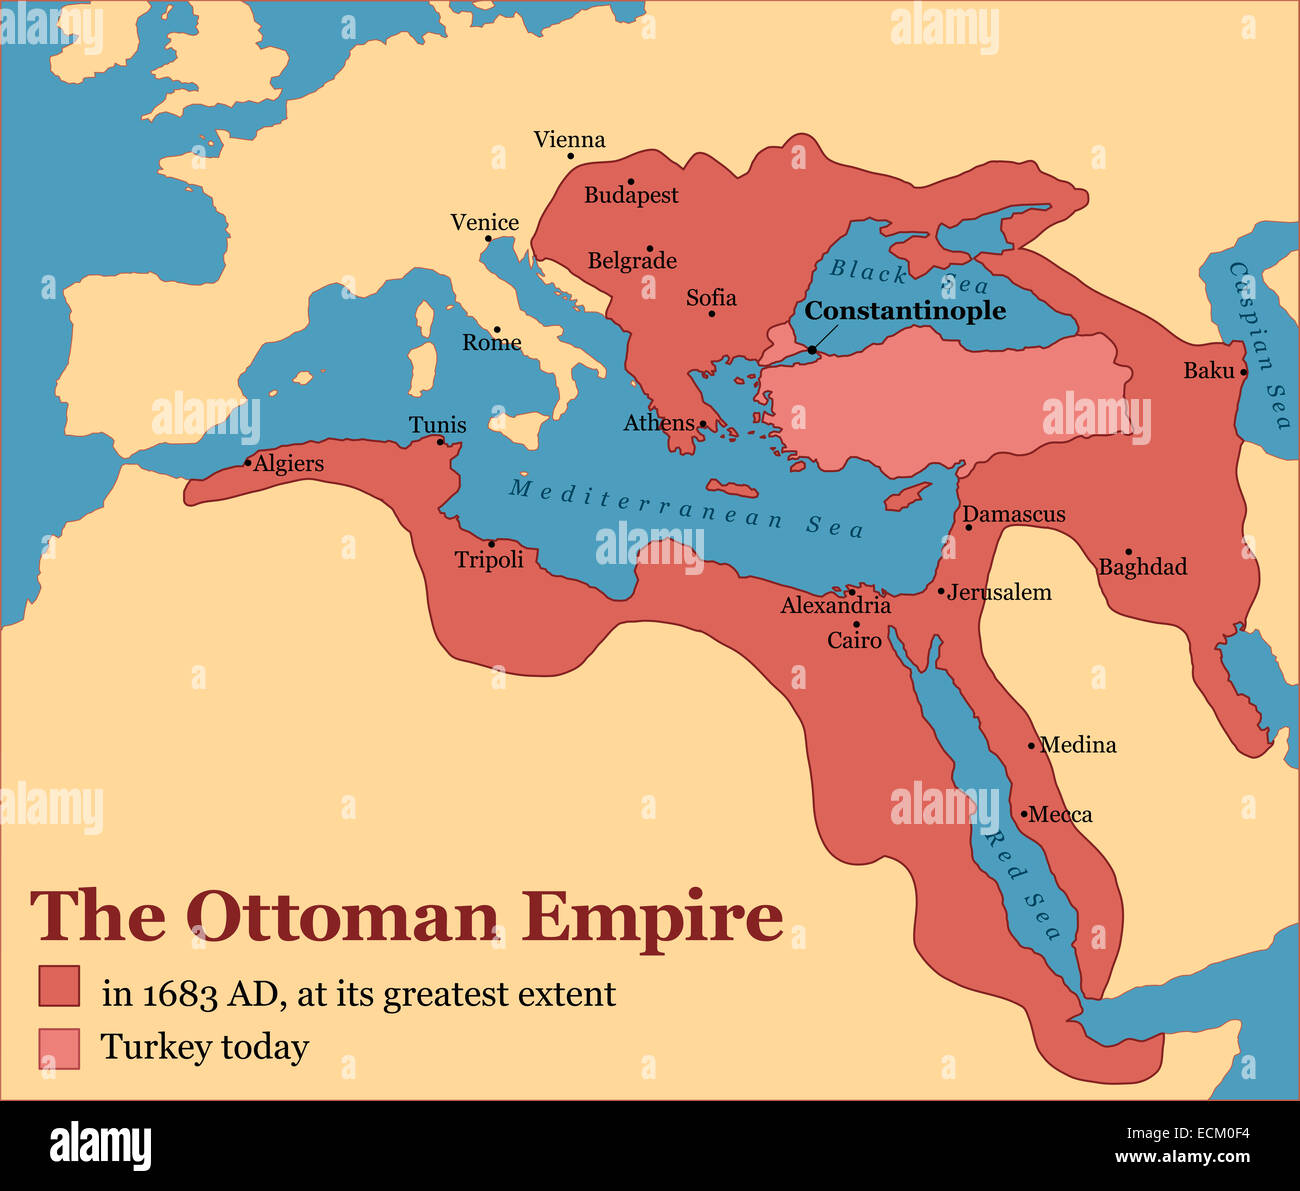 The Ottoman Empire at its greatest extent in 1683 and Turkey